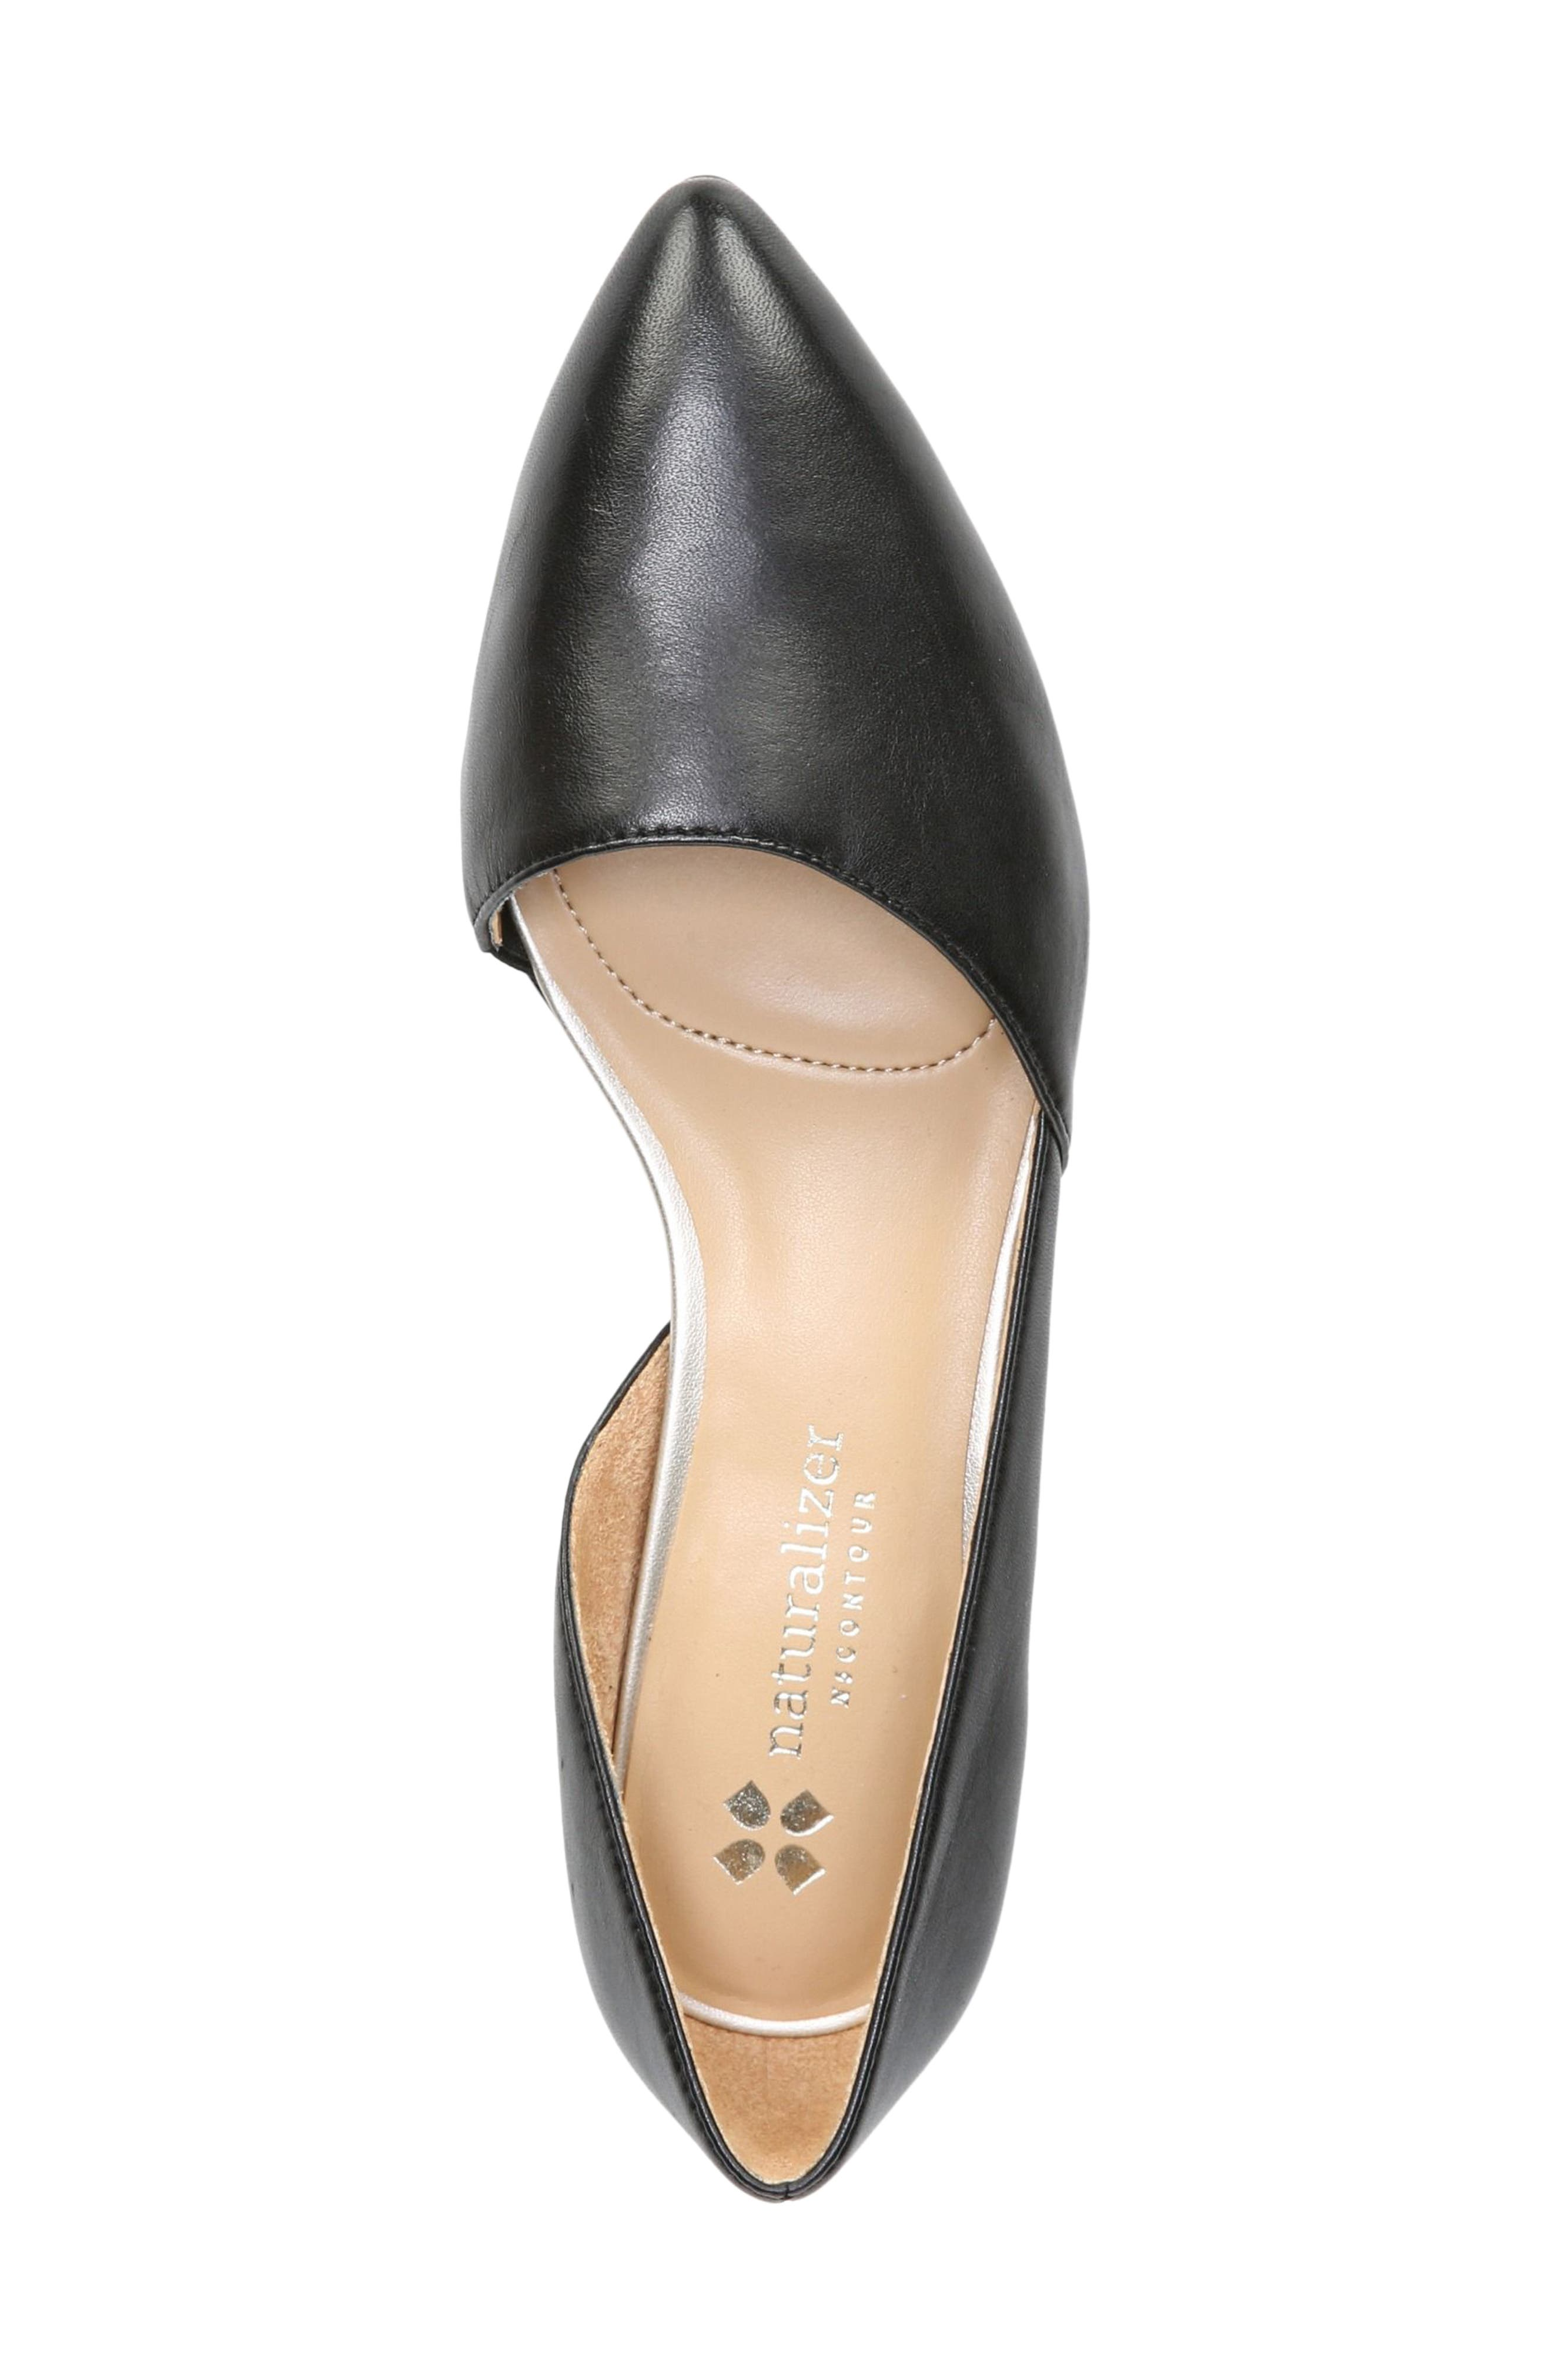 NATURALIZER, Samantha Half d'Orsay Flat, Alternate thumbnail 3, color, BLACK LEATHER